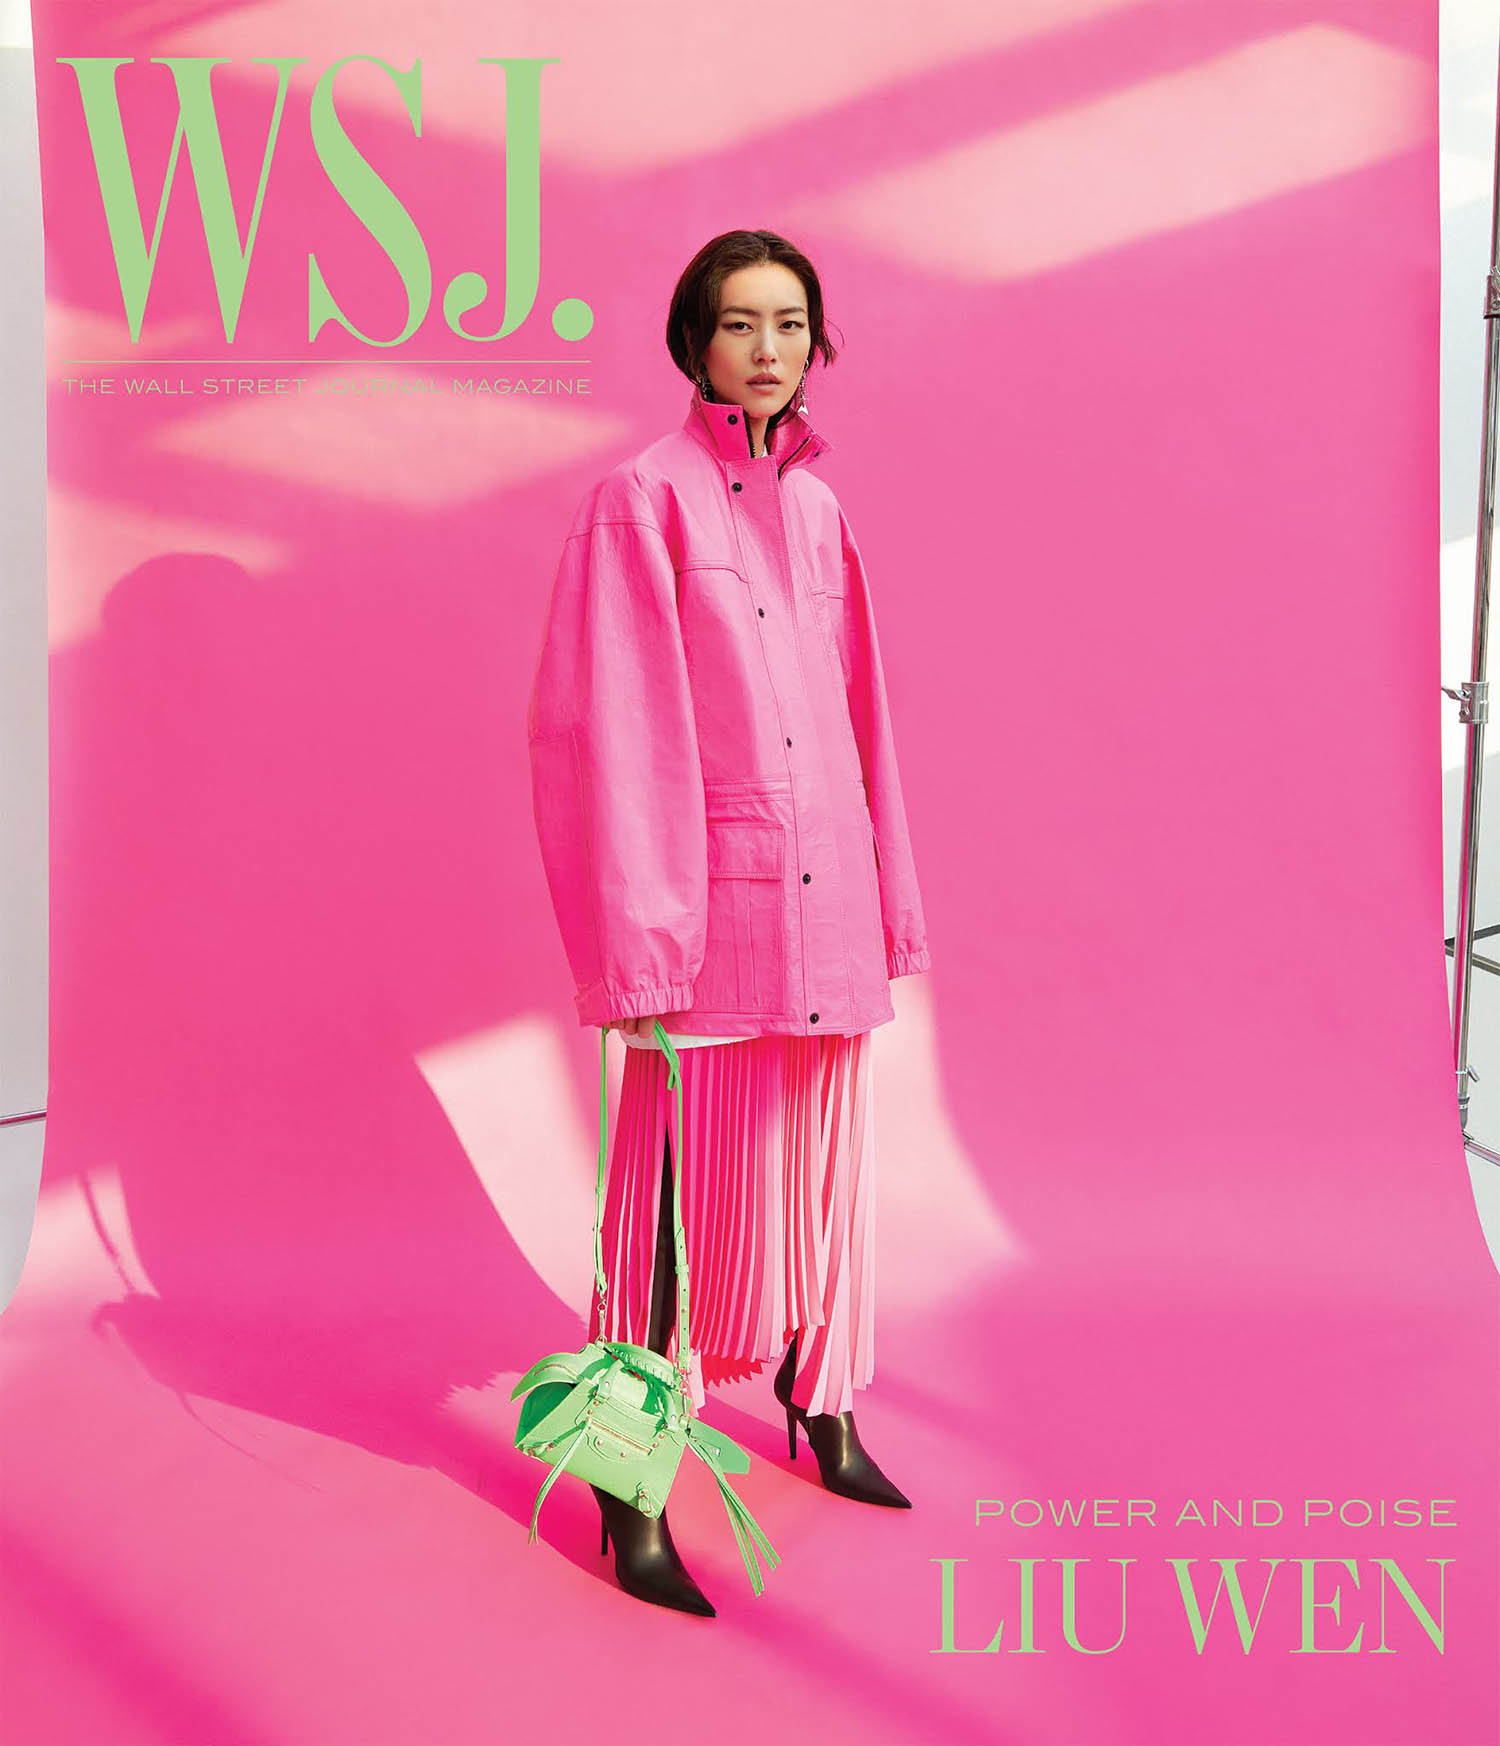 Liu Wen covers WSJ. Magazine April 2021 Digital Edition by Yuan Gui Mei